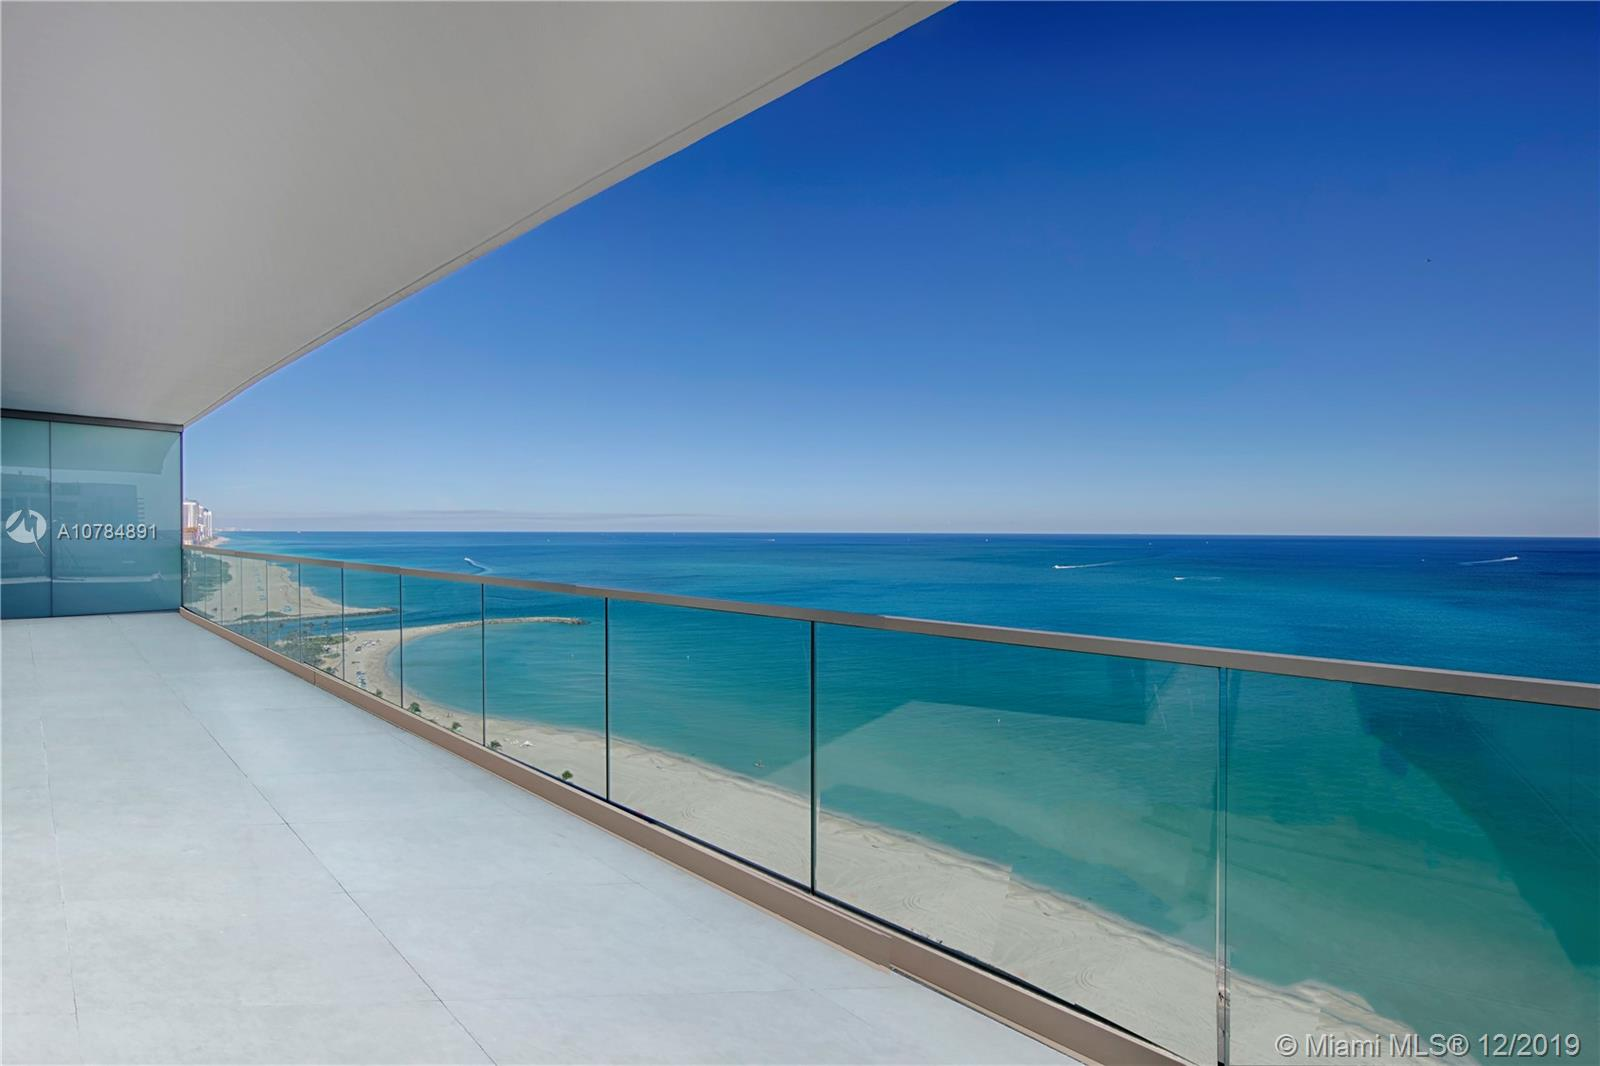 10201 Collins Ave, Unit #2301 Luxury Real Estate